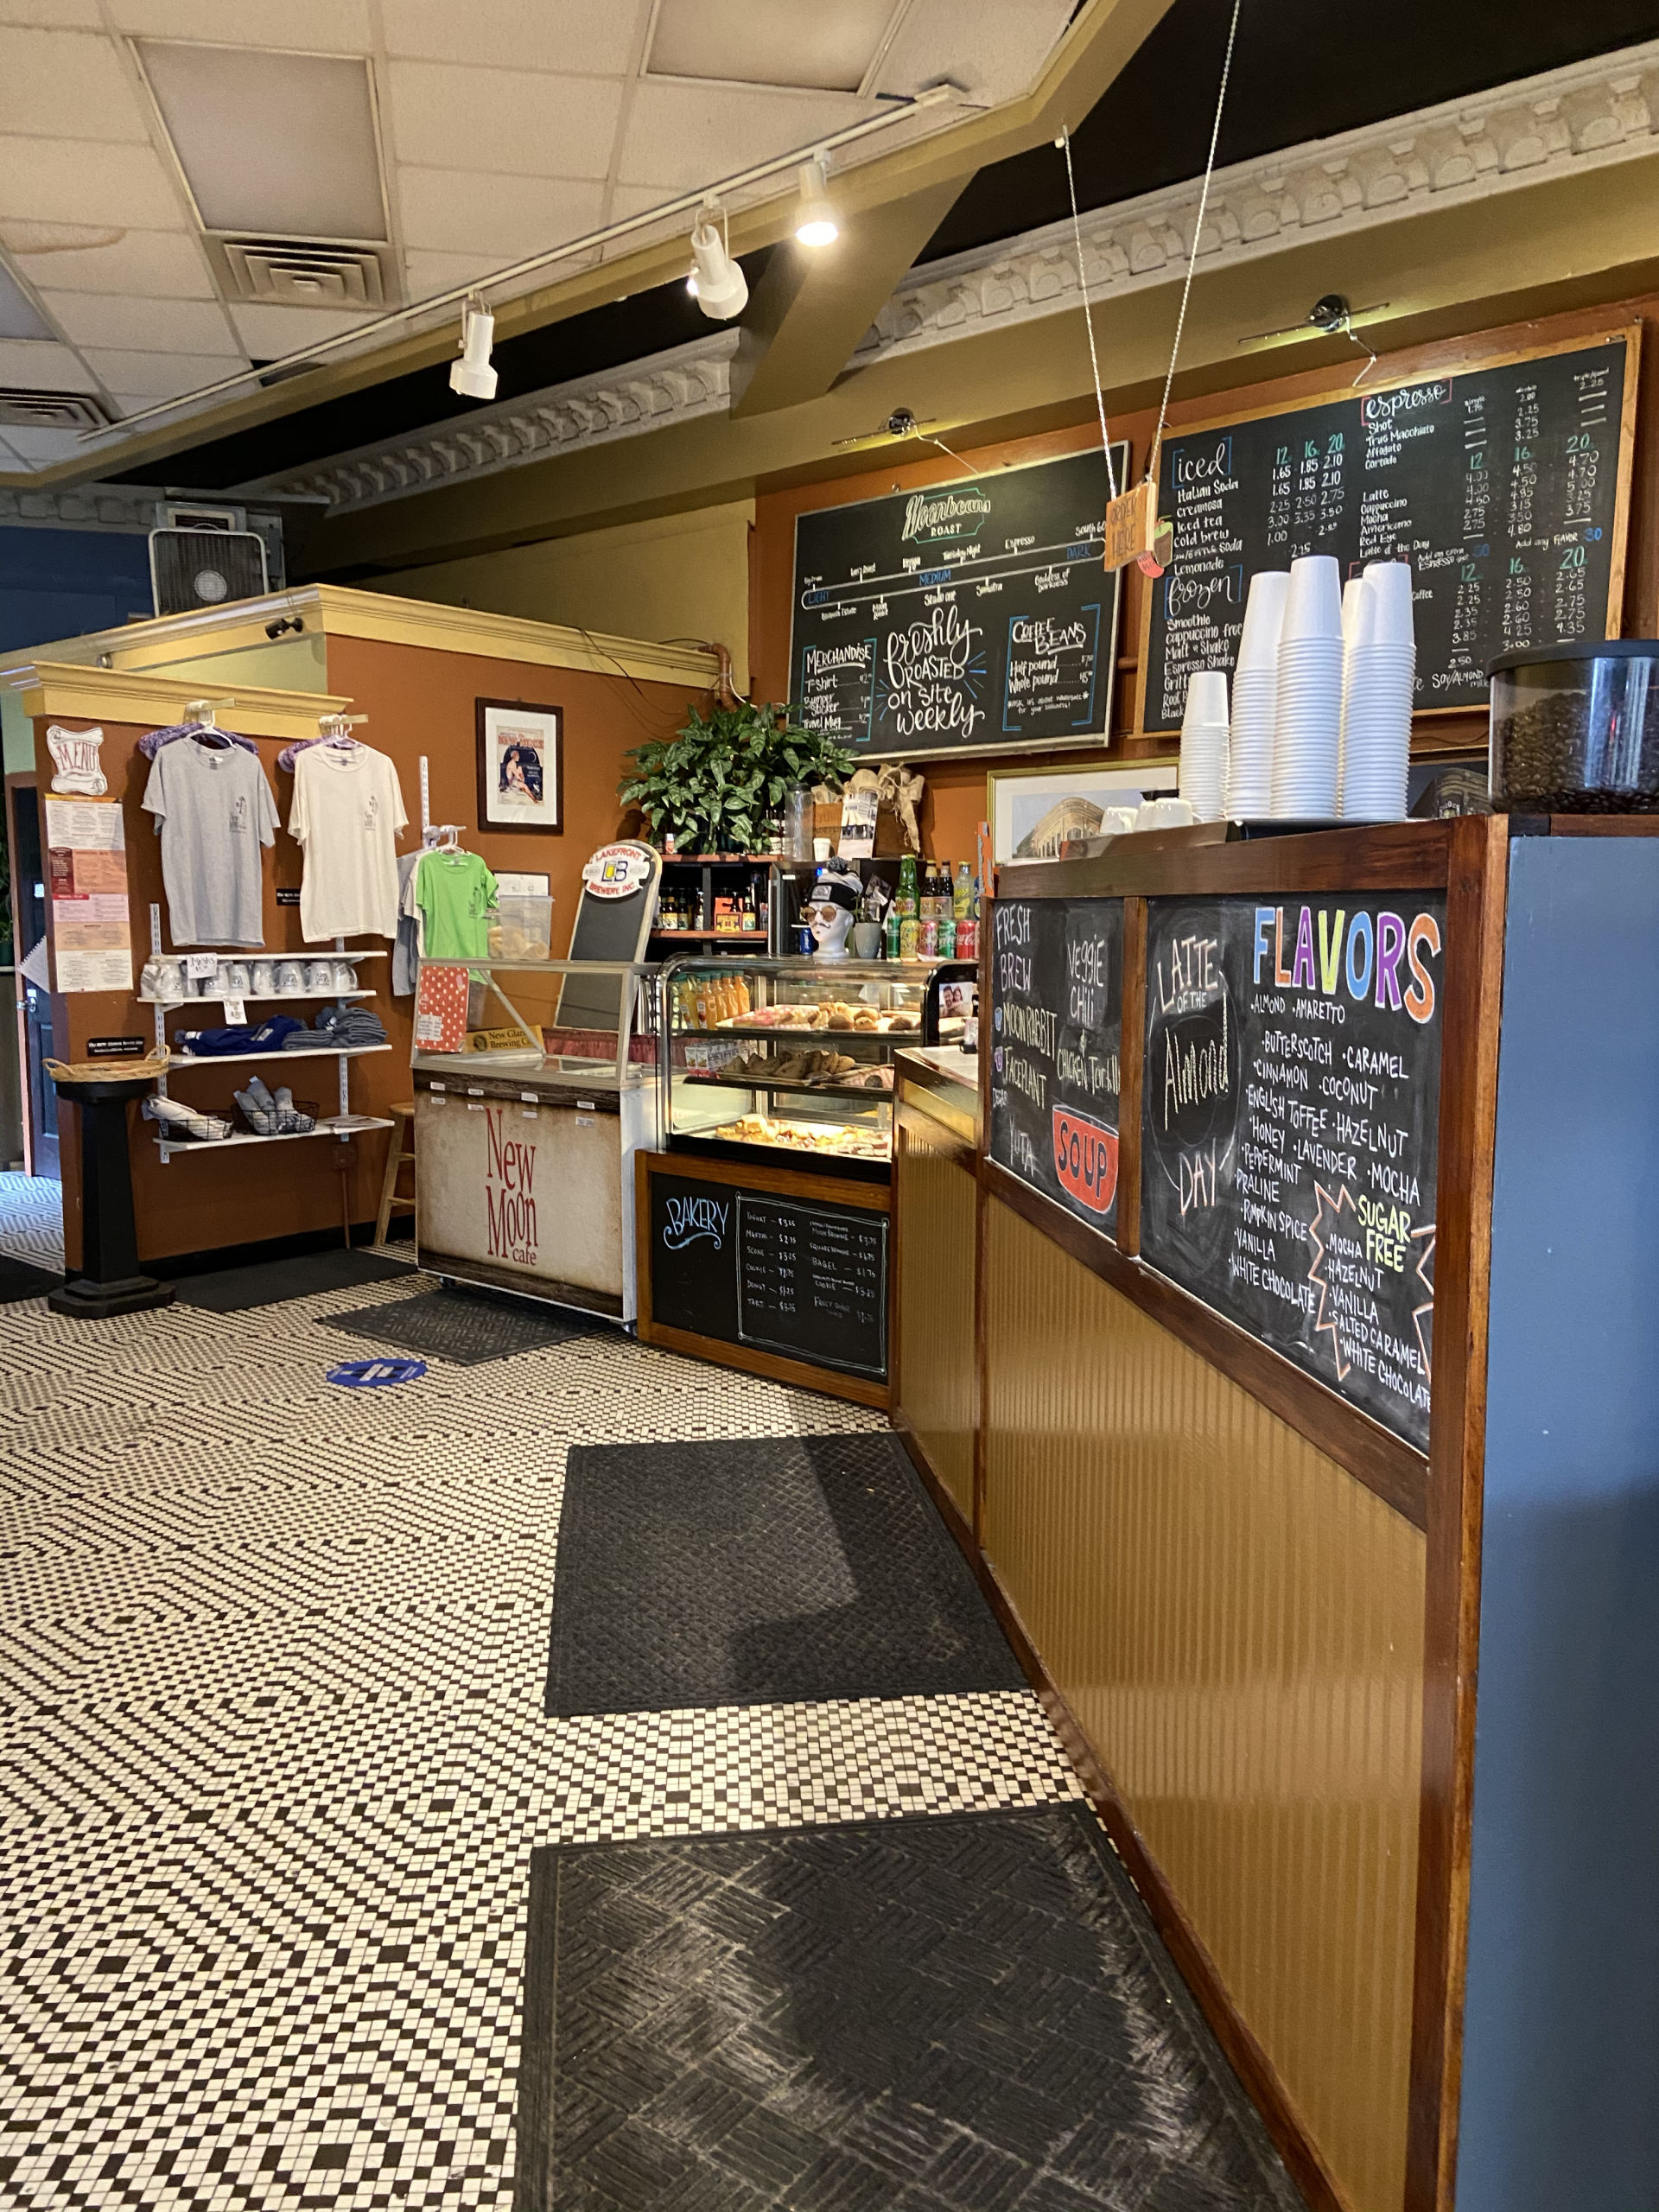 New Moon Cafe offers coffee, baked goods, sandwiches and more